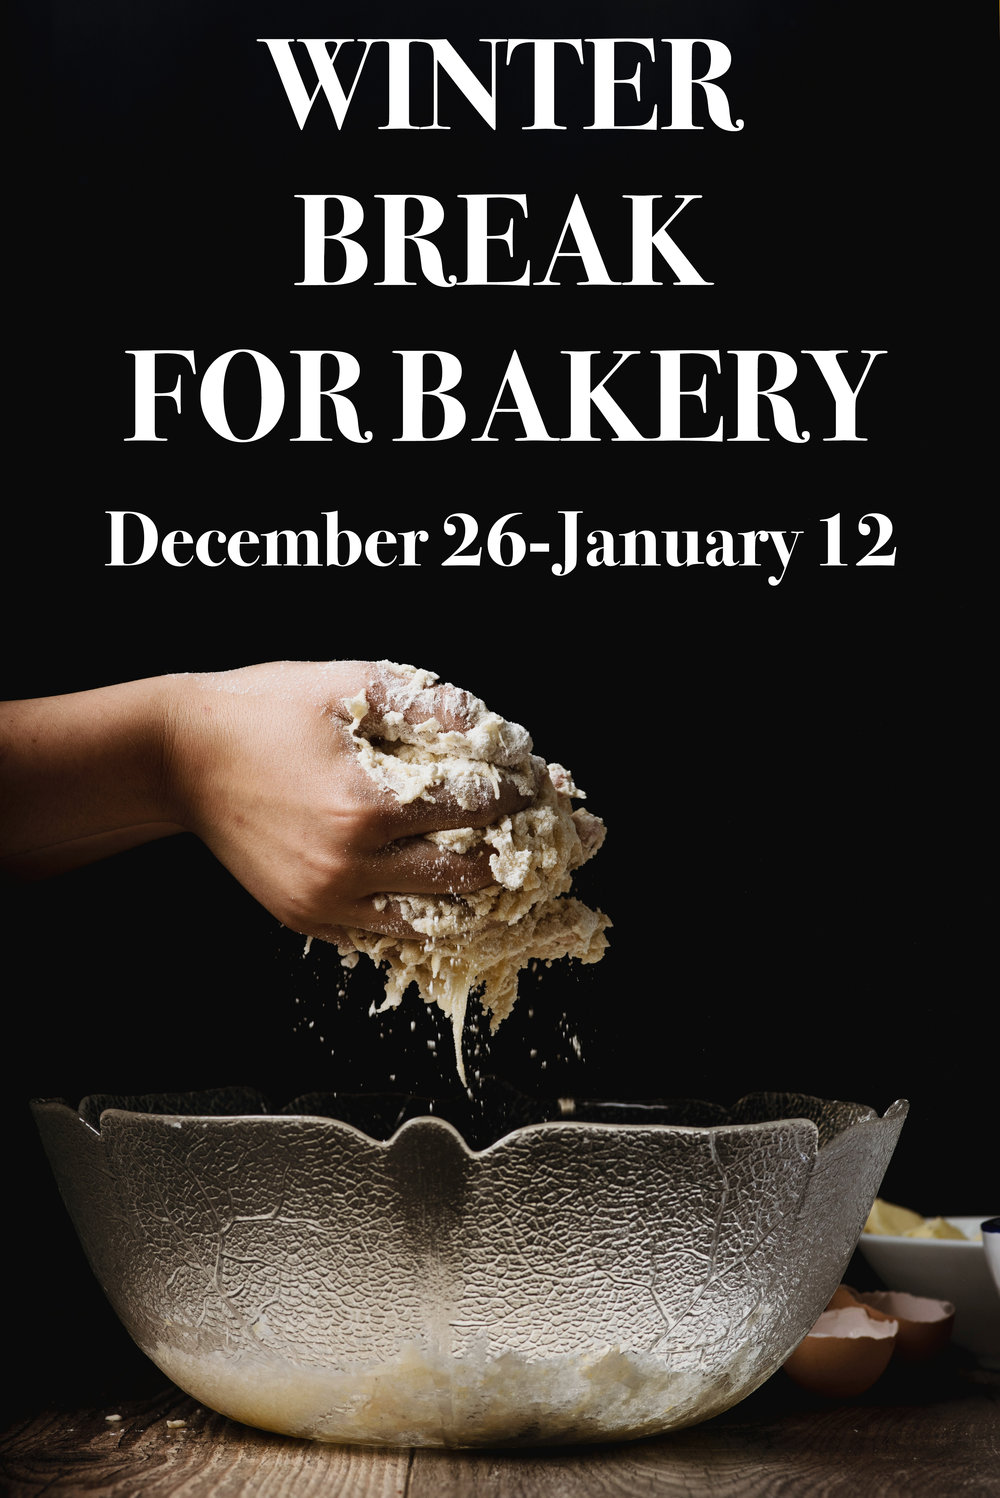 Bakery Winter Break.jpg